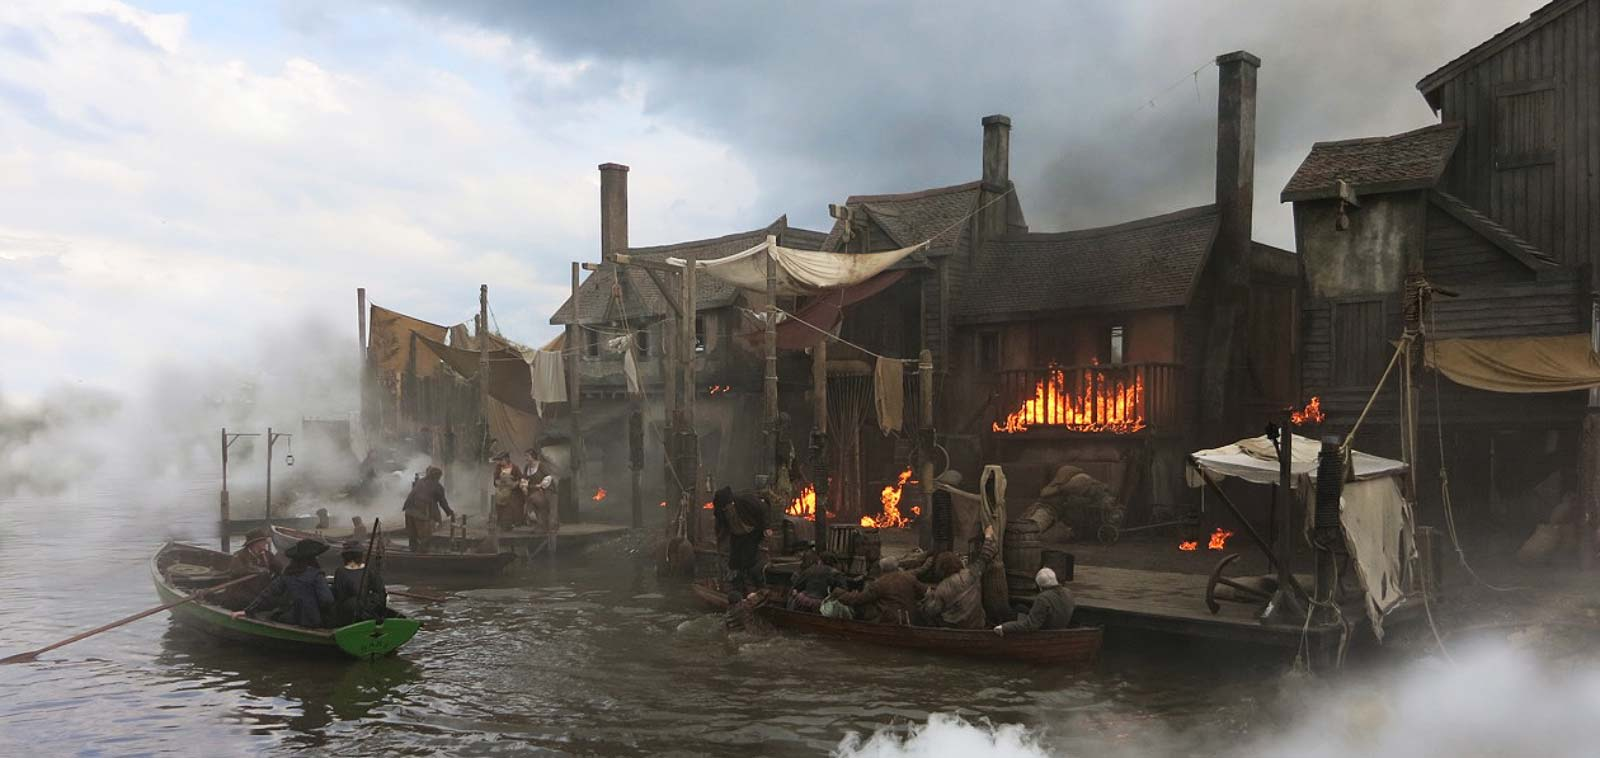 Dominic Hyman Production Designer Image of Great fire of London